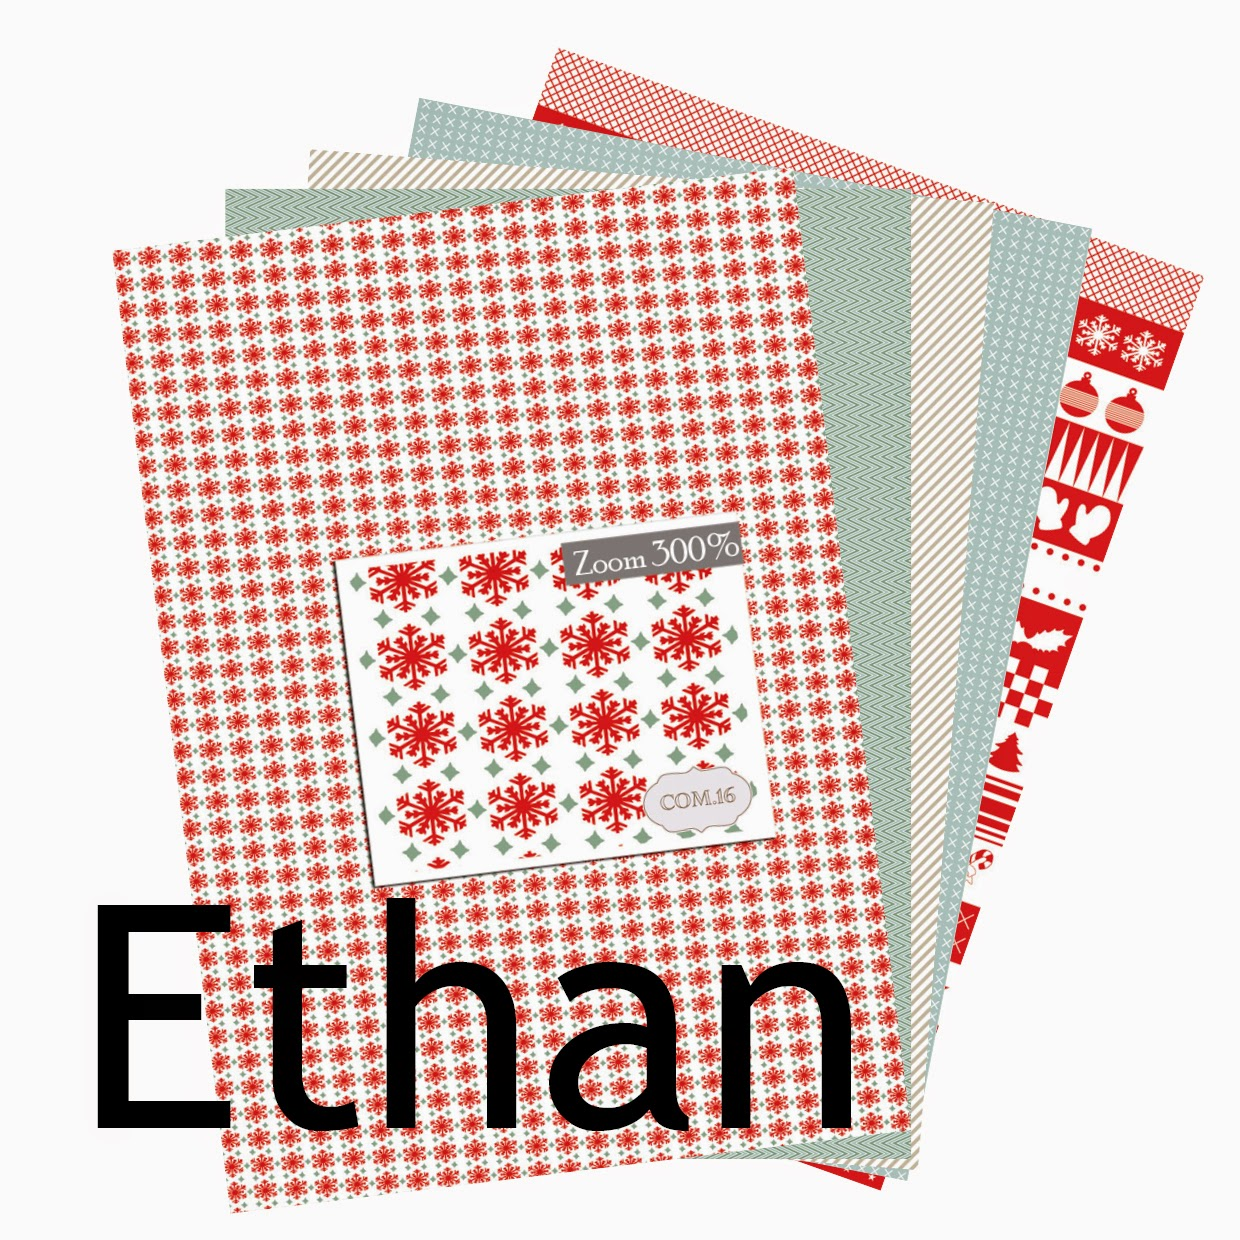 http://com16.fr/fr/51-collection-ethan